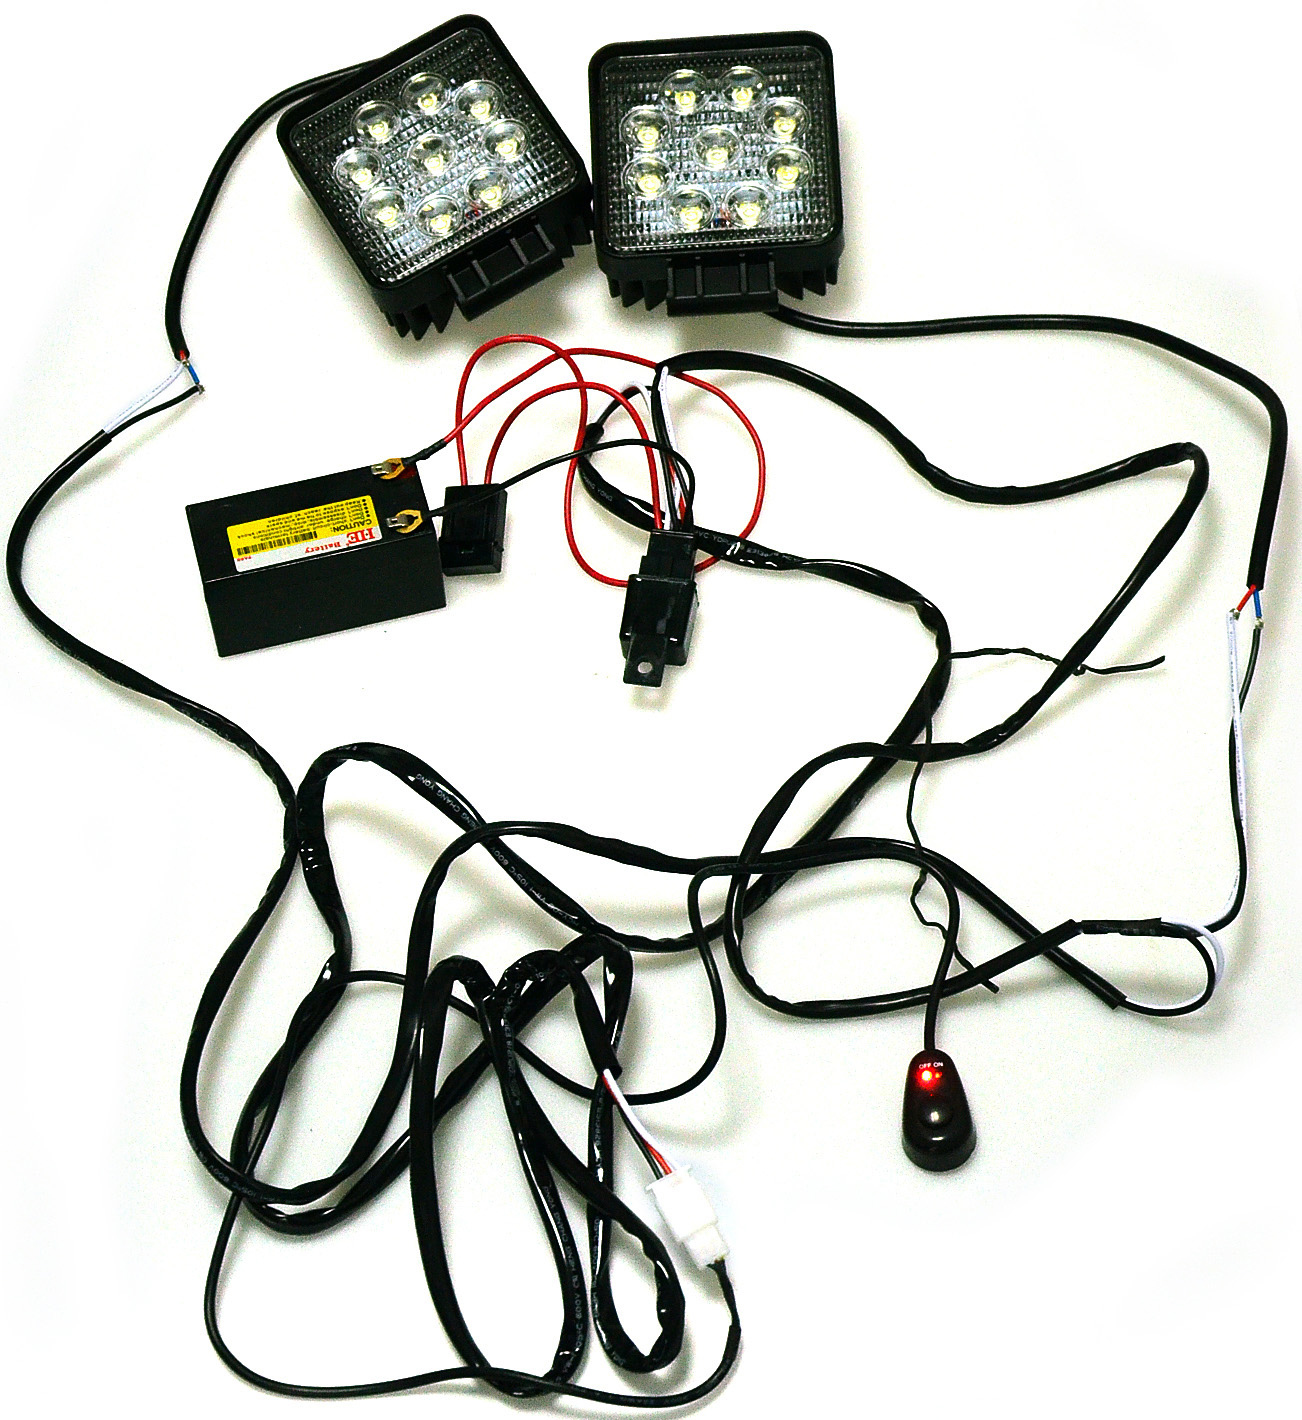 Led Wiring Kit Free Diagram For You Light Bar Kawell 2 Leg Harness Include Switch Support 120w Rh Kawelldeal Com Whip